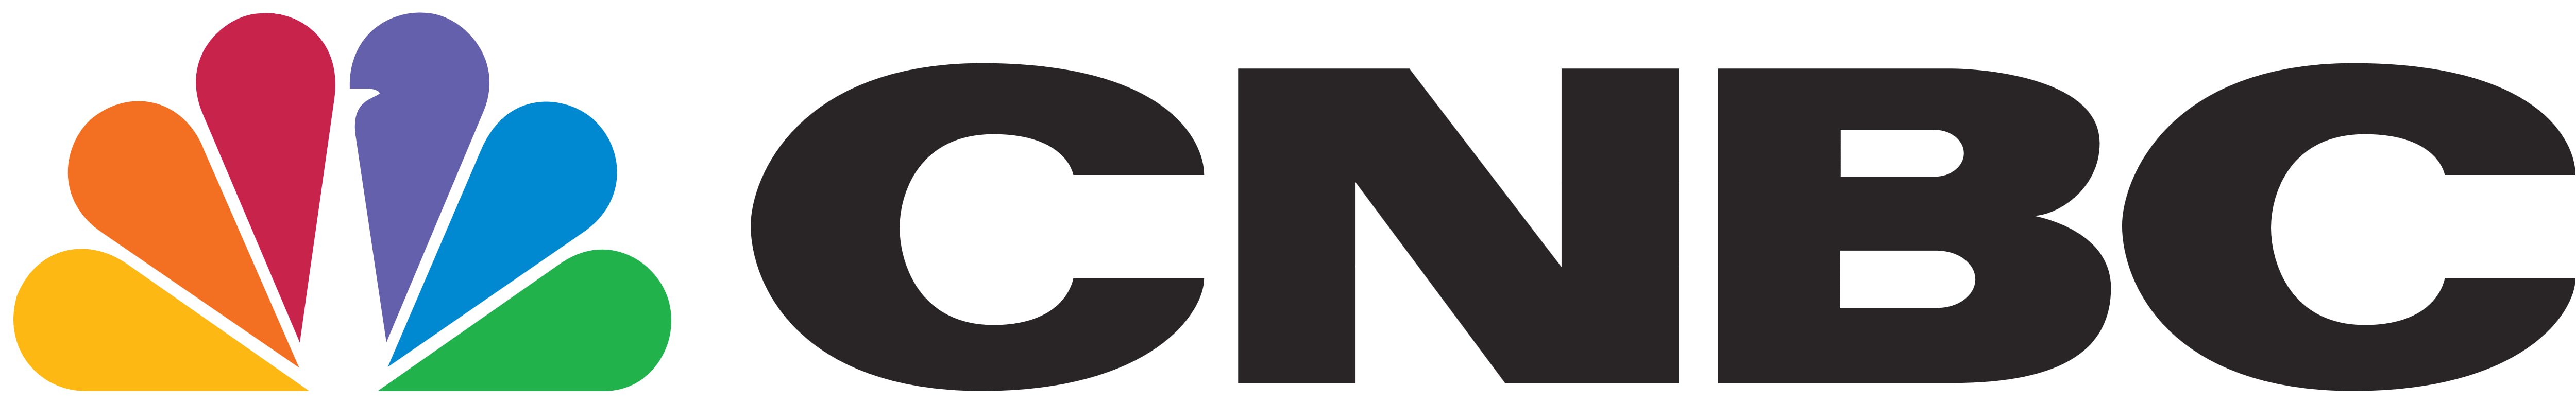 CNBC logo horizontal in rainbow color and black colors